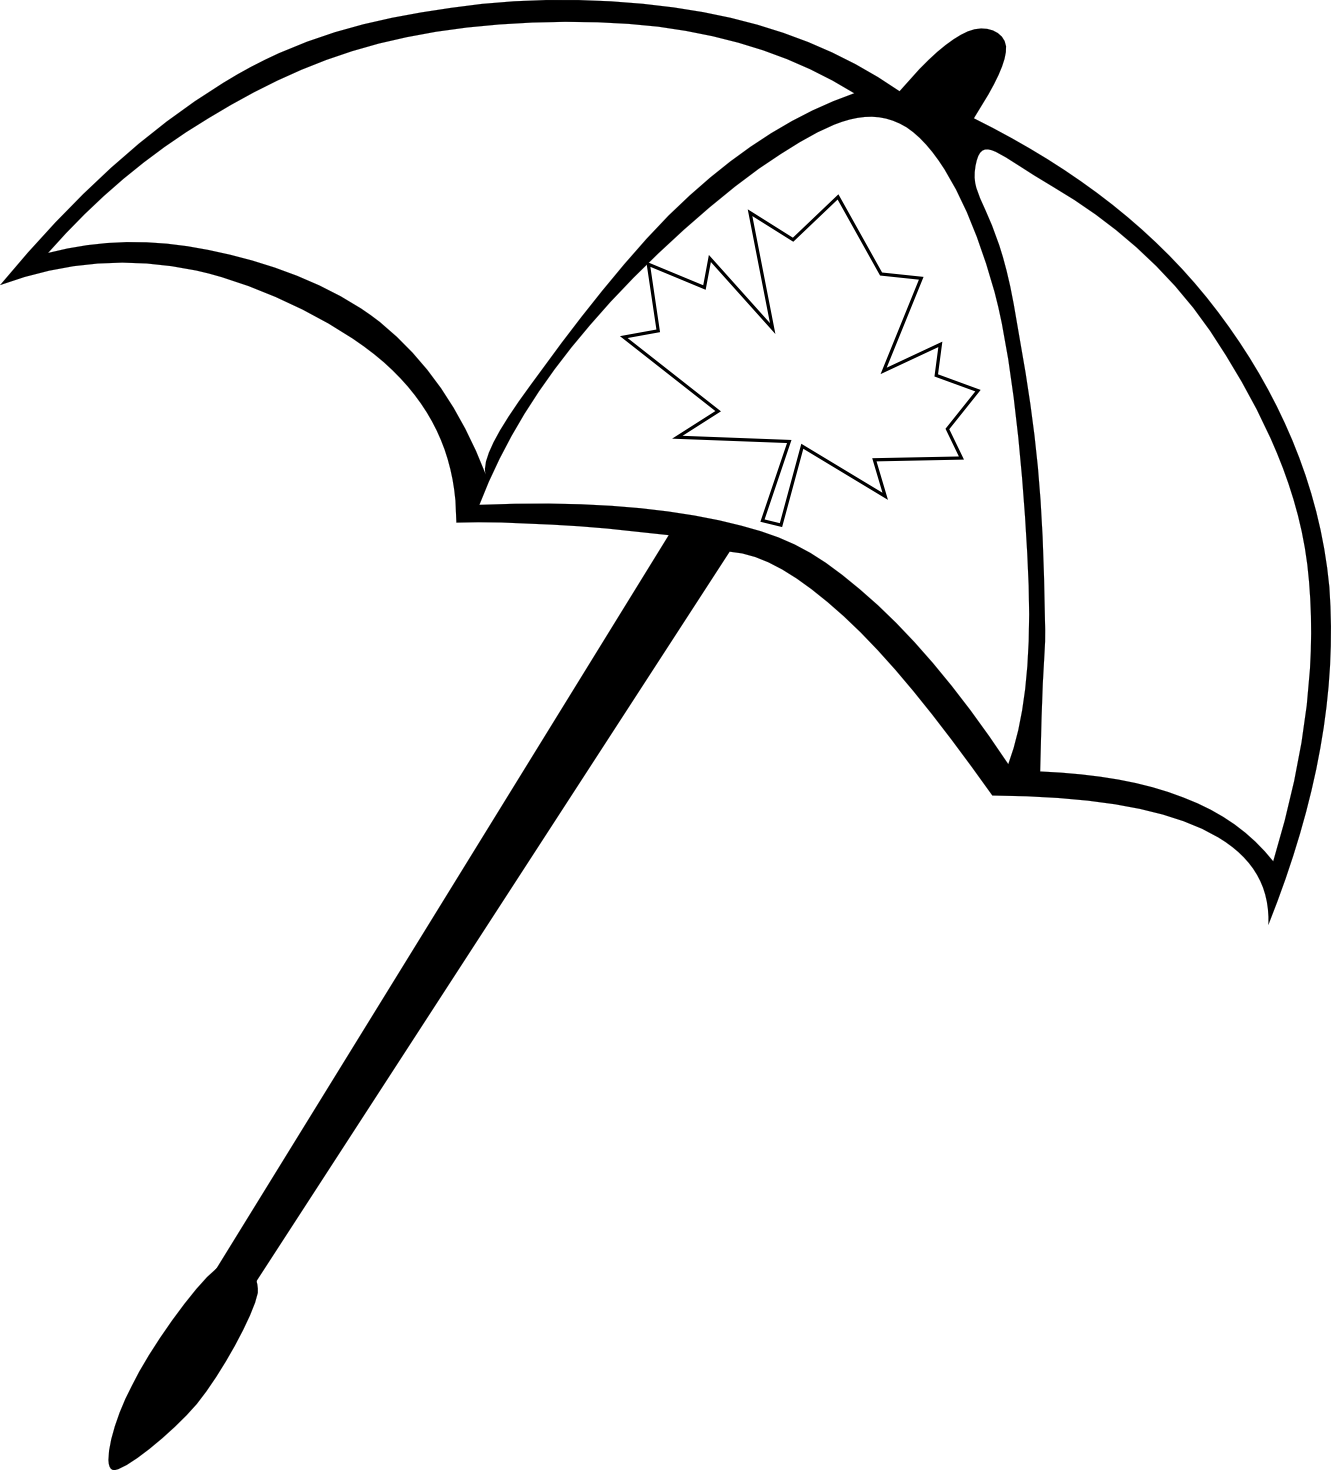 Umbrella Line Drawing at GetDrawings.com | Free for personal use ...